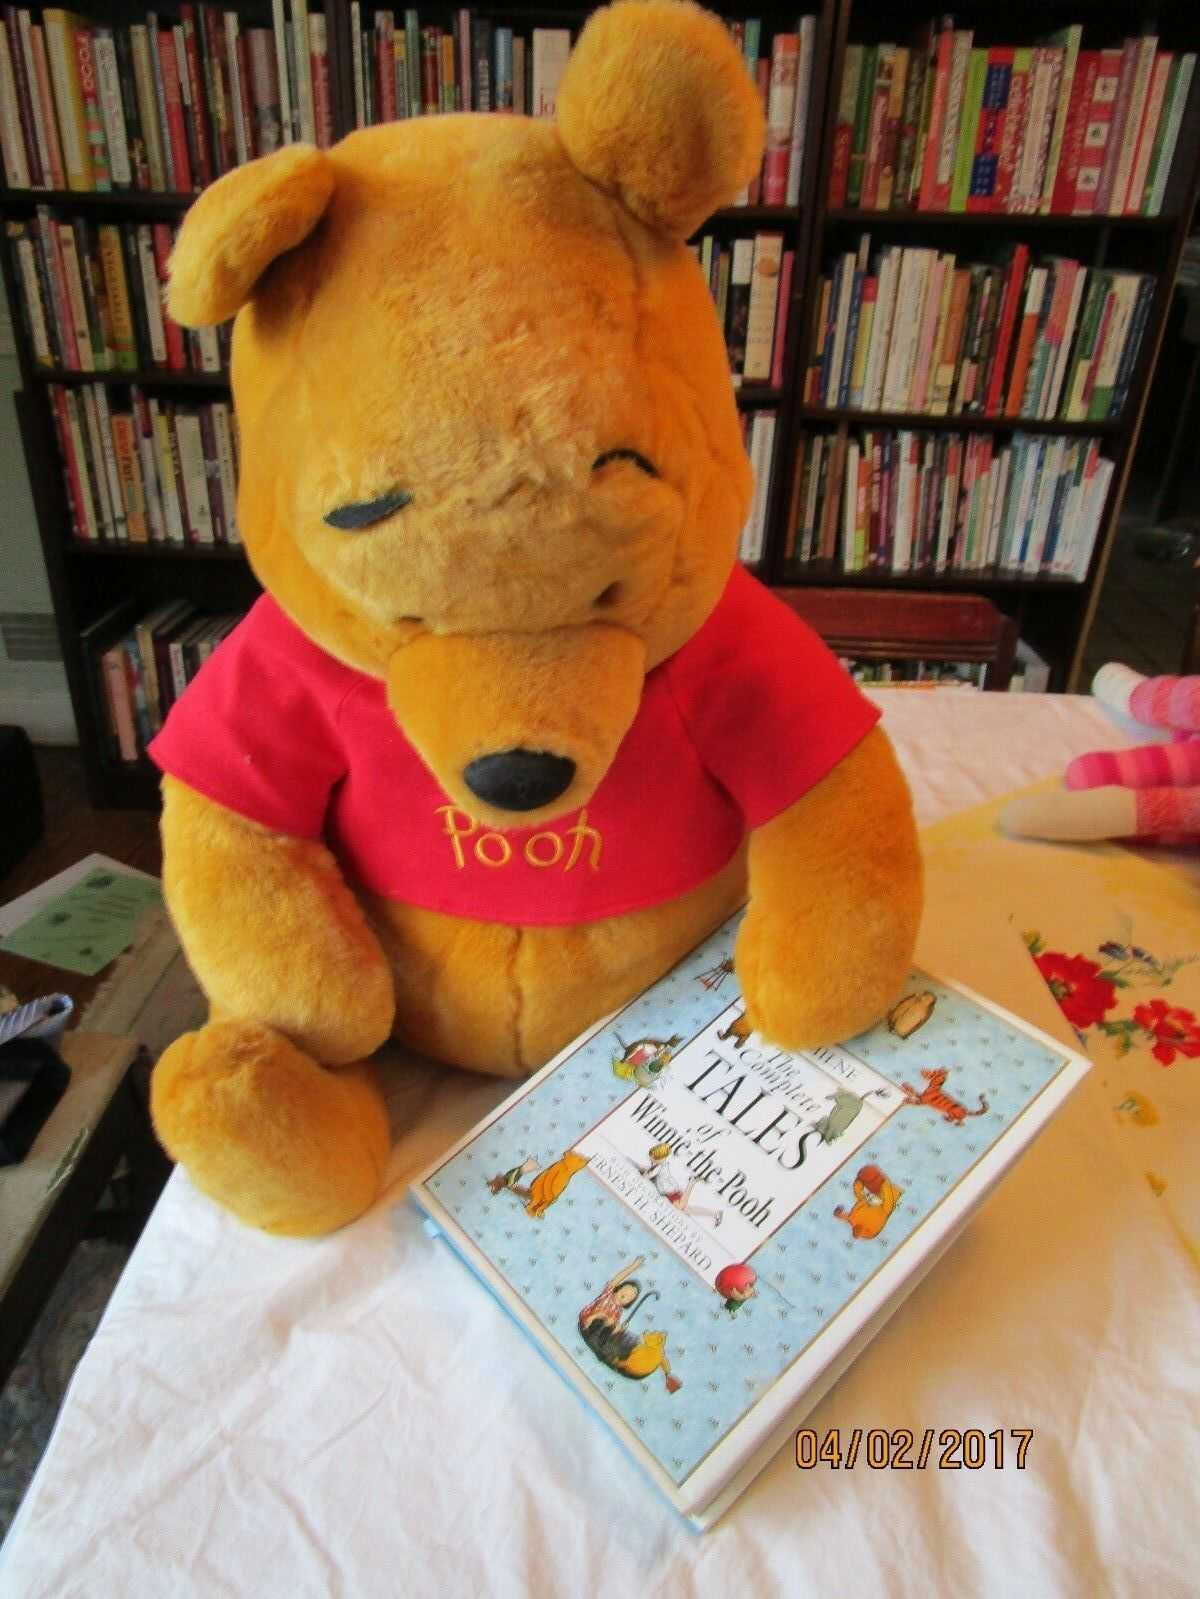 Large 28 Inch Plush Pooh Bear and Book Comp Tales of Winnie the Pooh